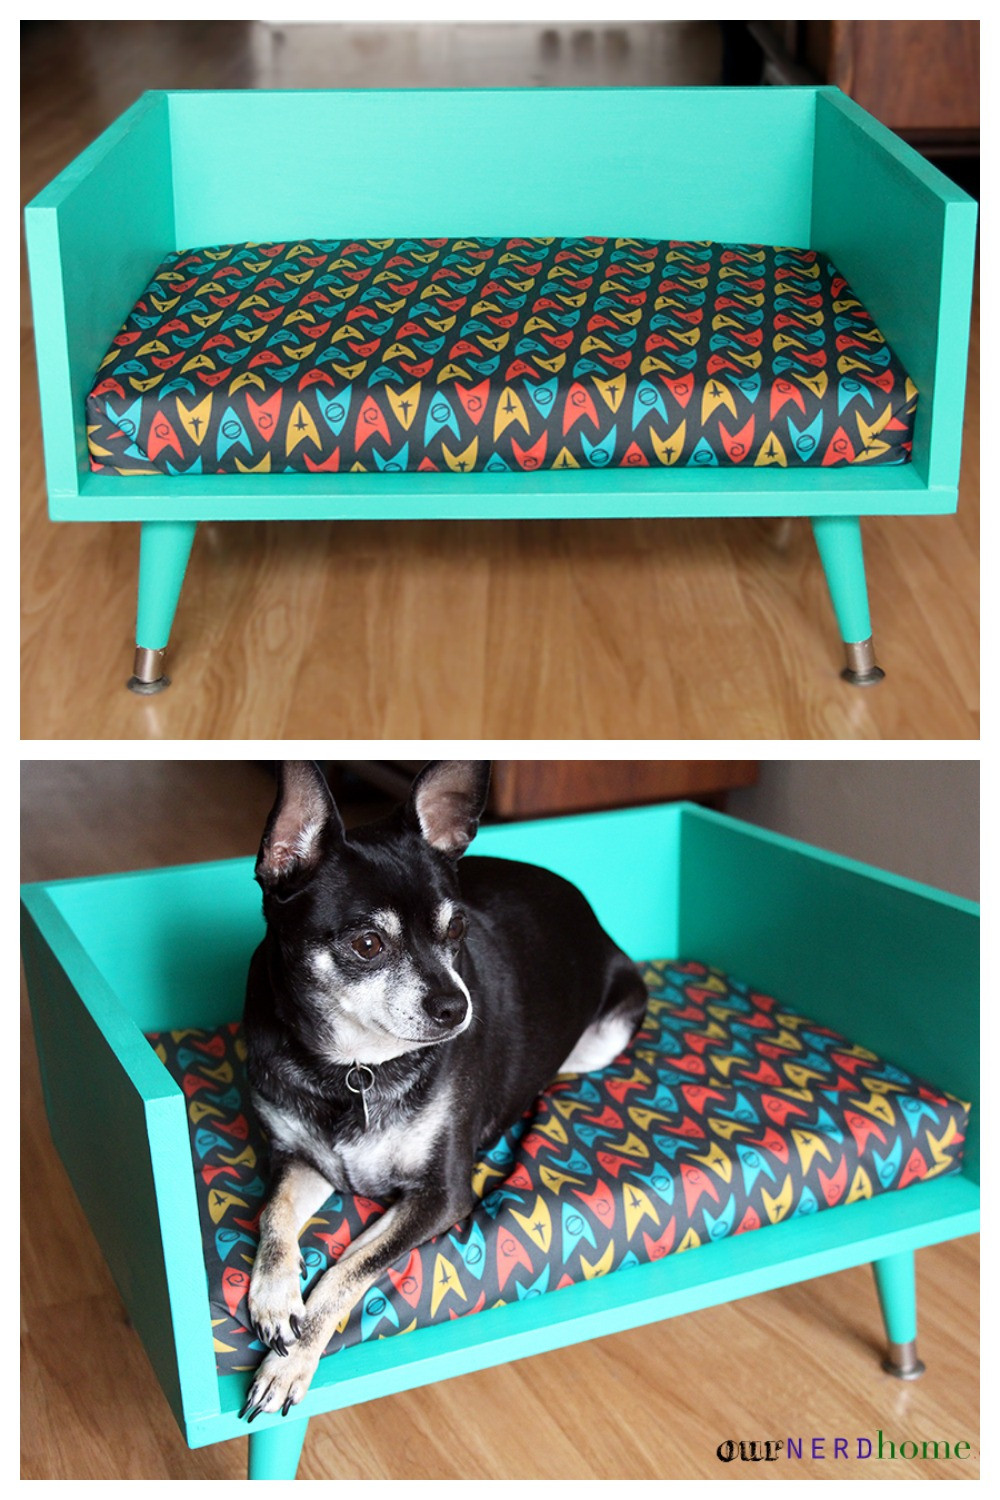 Best ideas about DIY Pet Beds . Save or Pin DIY Mid Century Style Pet Bed with a Touch of Star Trek Now.